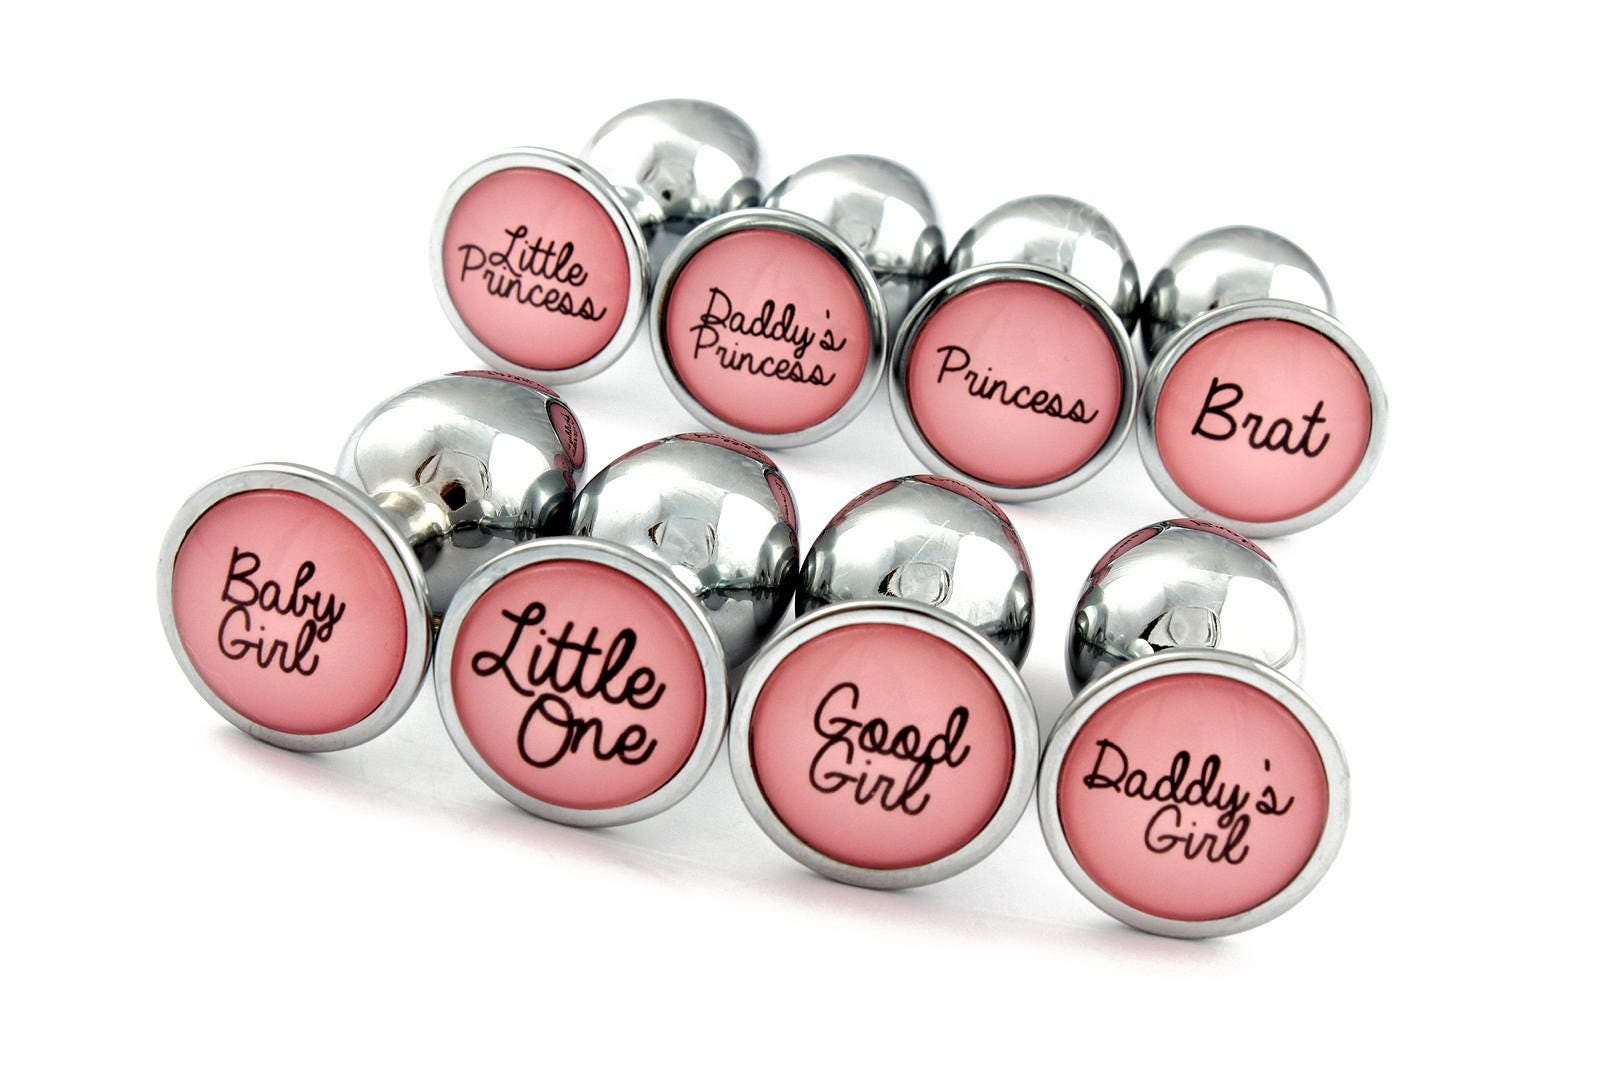 Butt Plugs For Ddlg Pretty Pink Custom Plugs With Daddys-3518